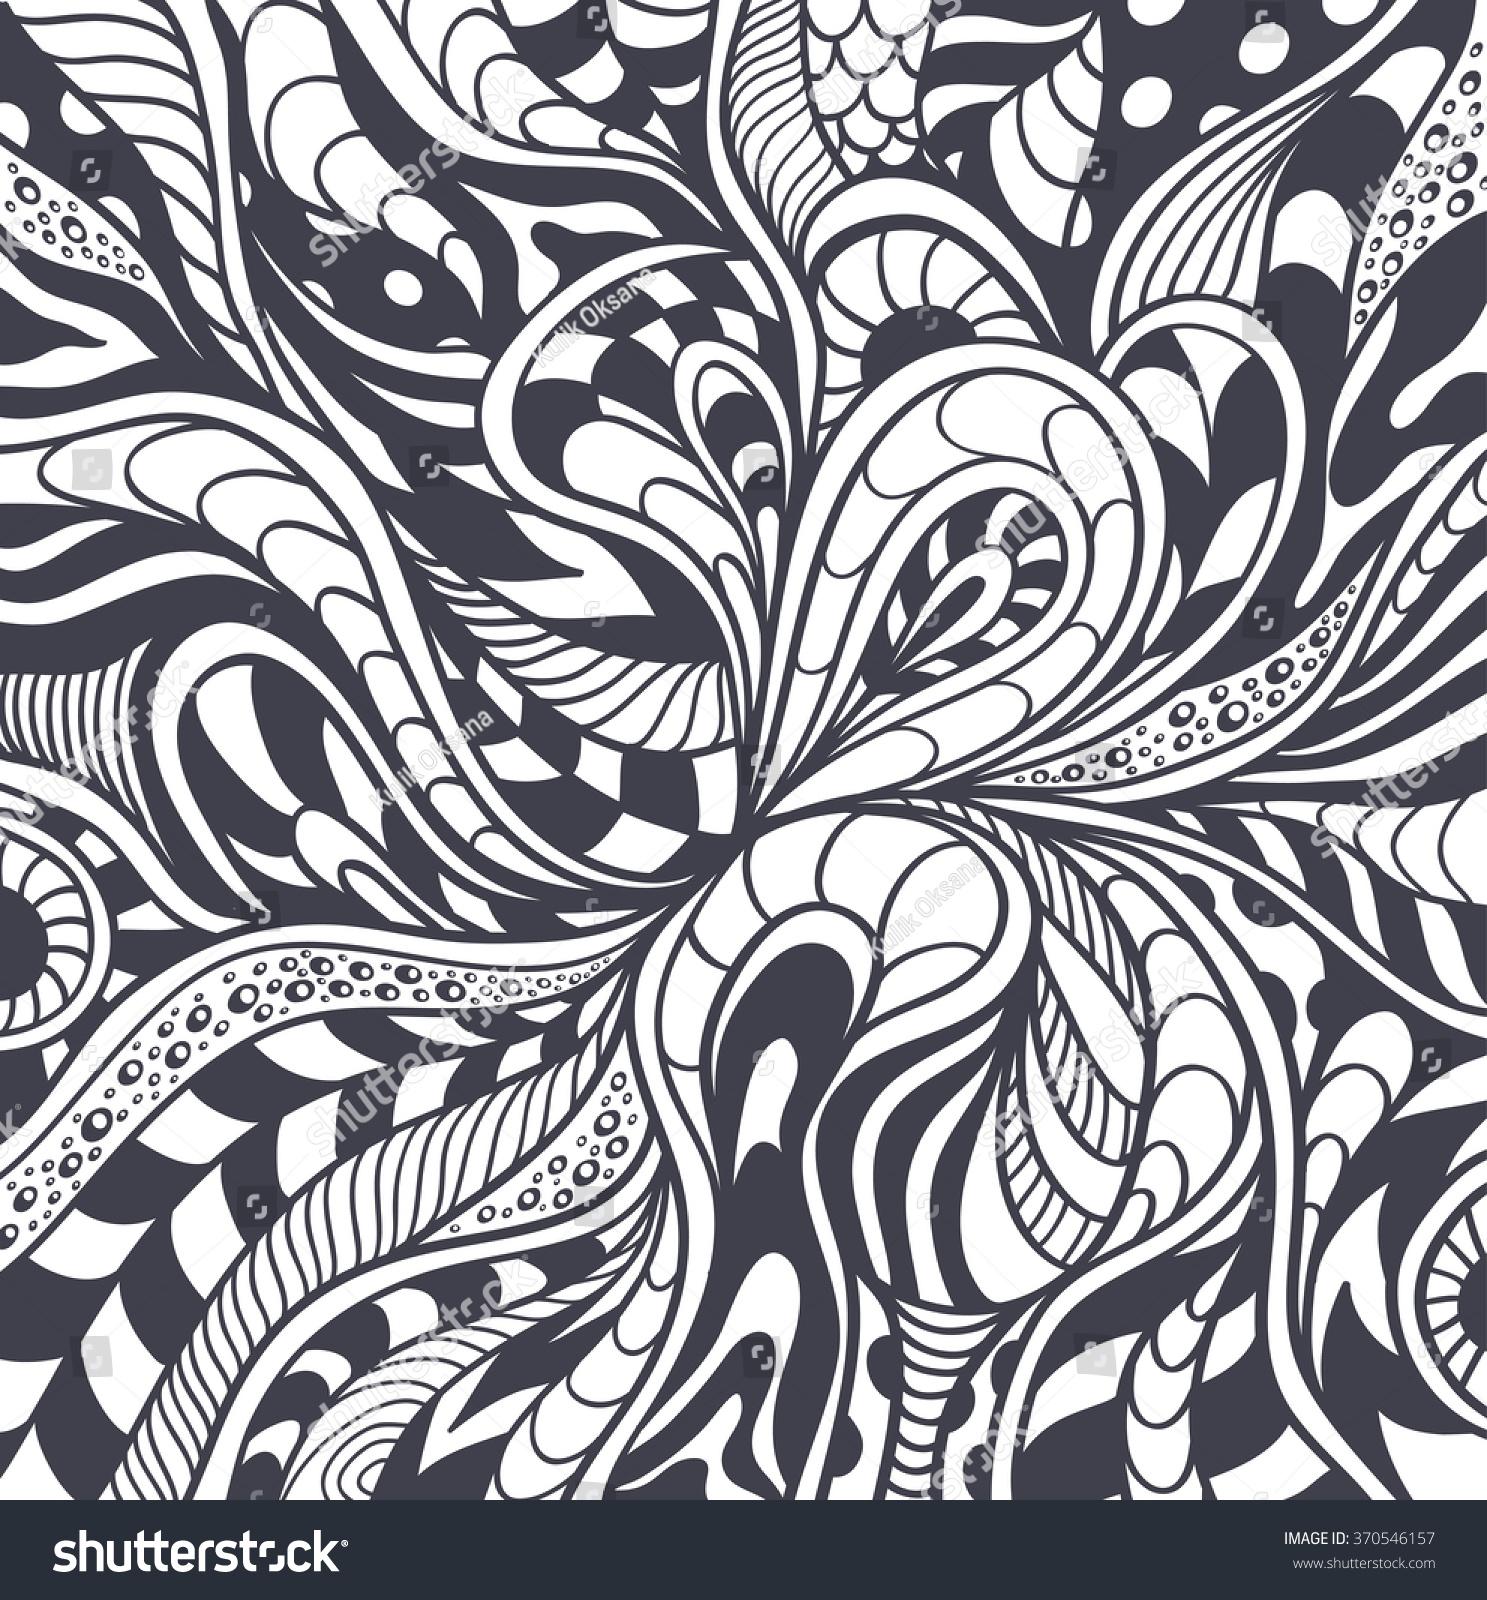 abstract background or pattern or texture in zen tangle zen doodle style black on